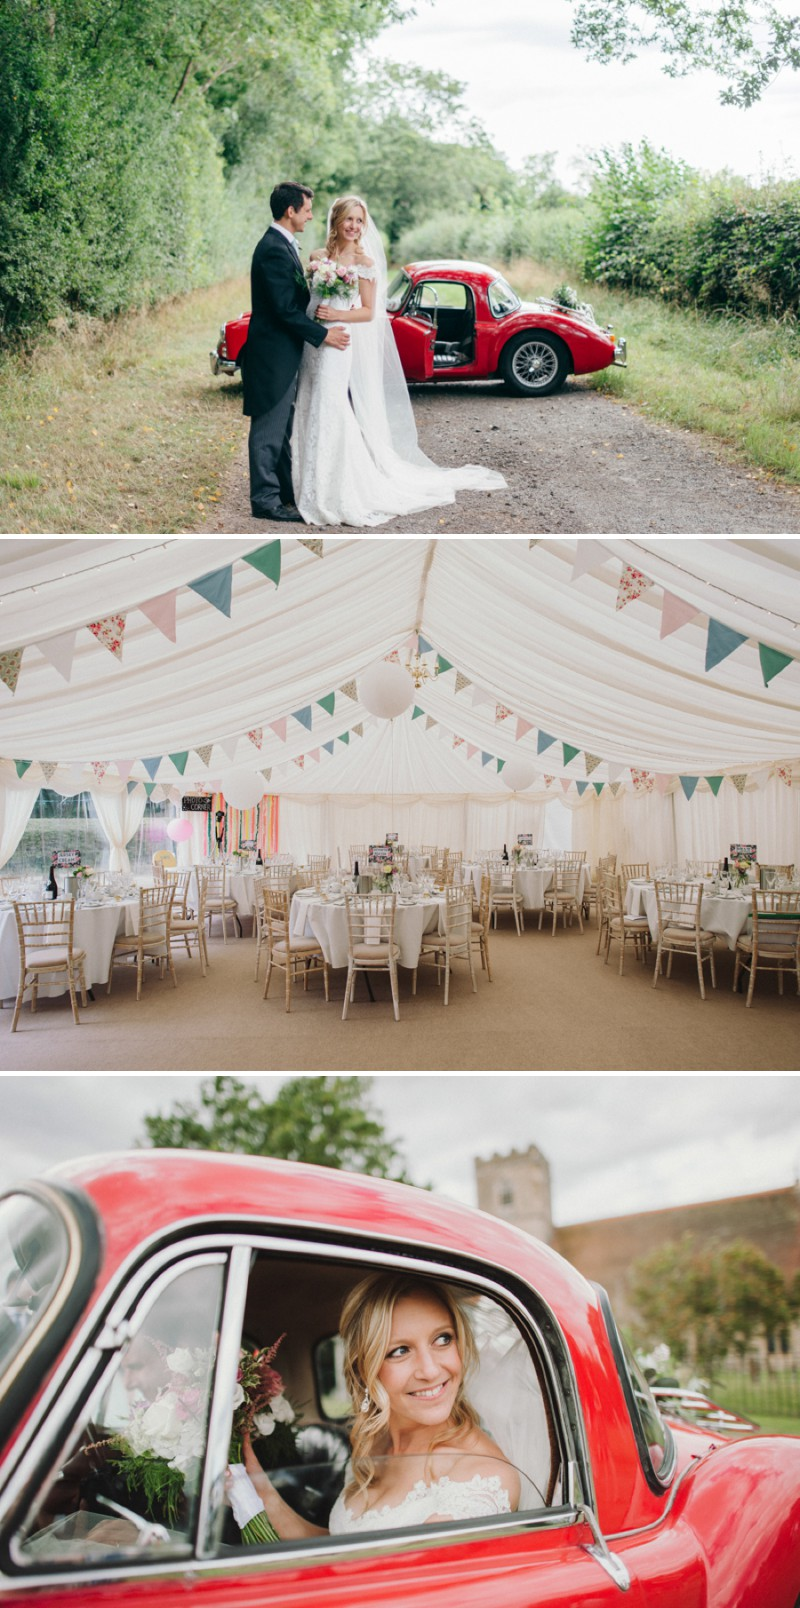 An English Back Garden Wedding With A Romona Keveza Dress And Jimmy Choos And A Pink Rose Bouquet With Mint Bridesmaid Dresses By KRAAN Wedding Photography._0008